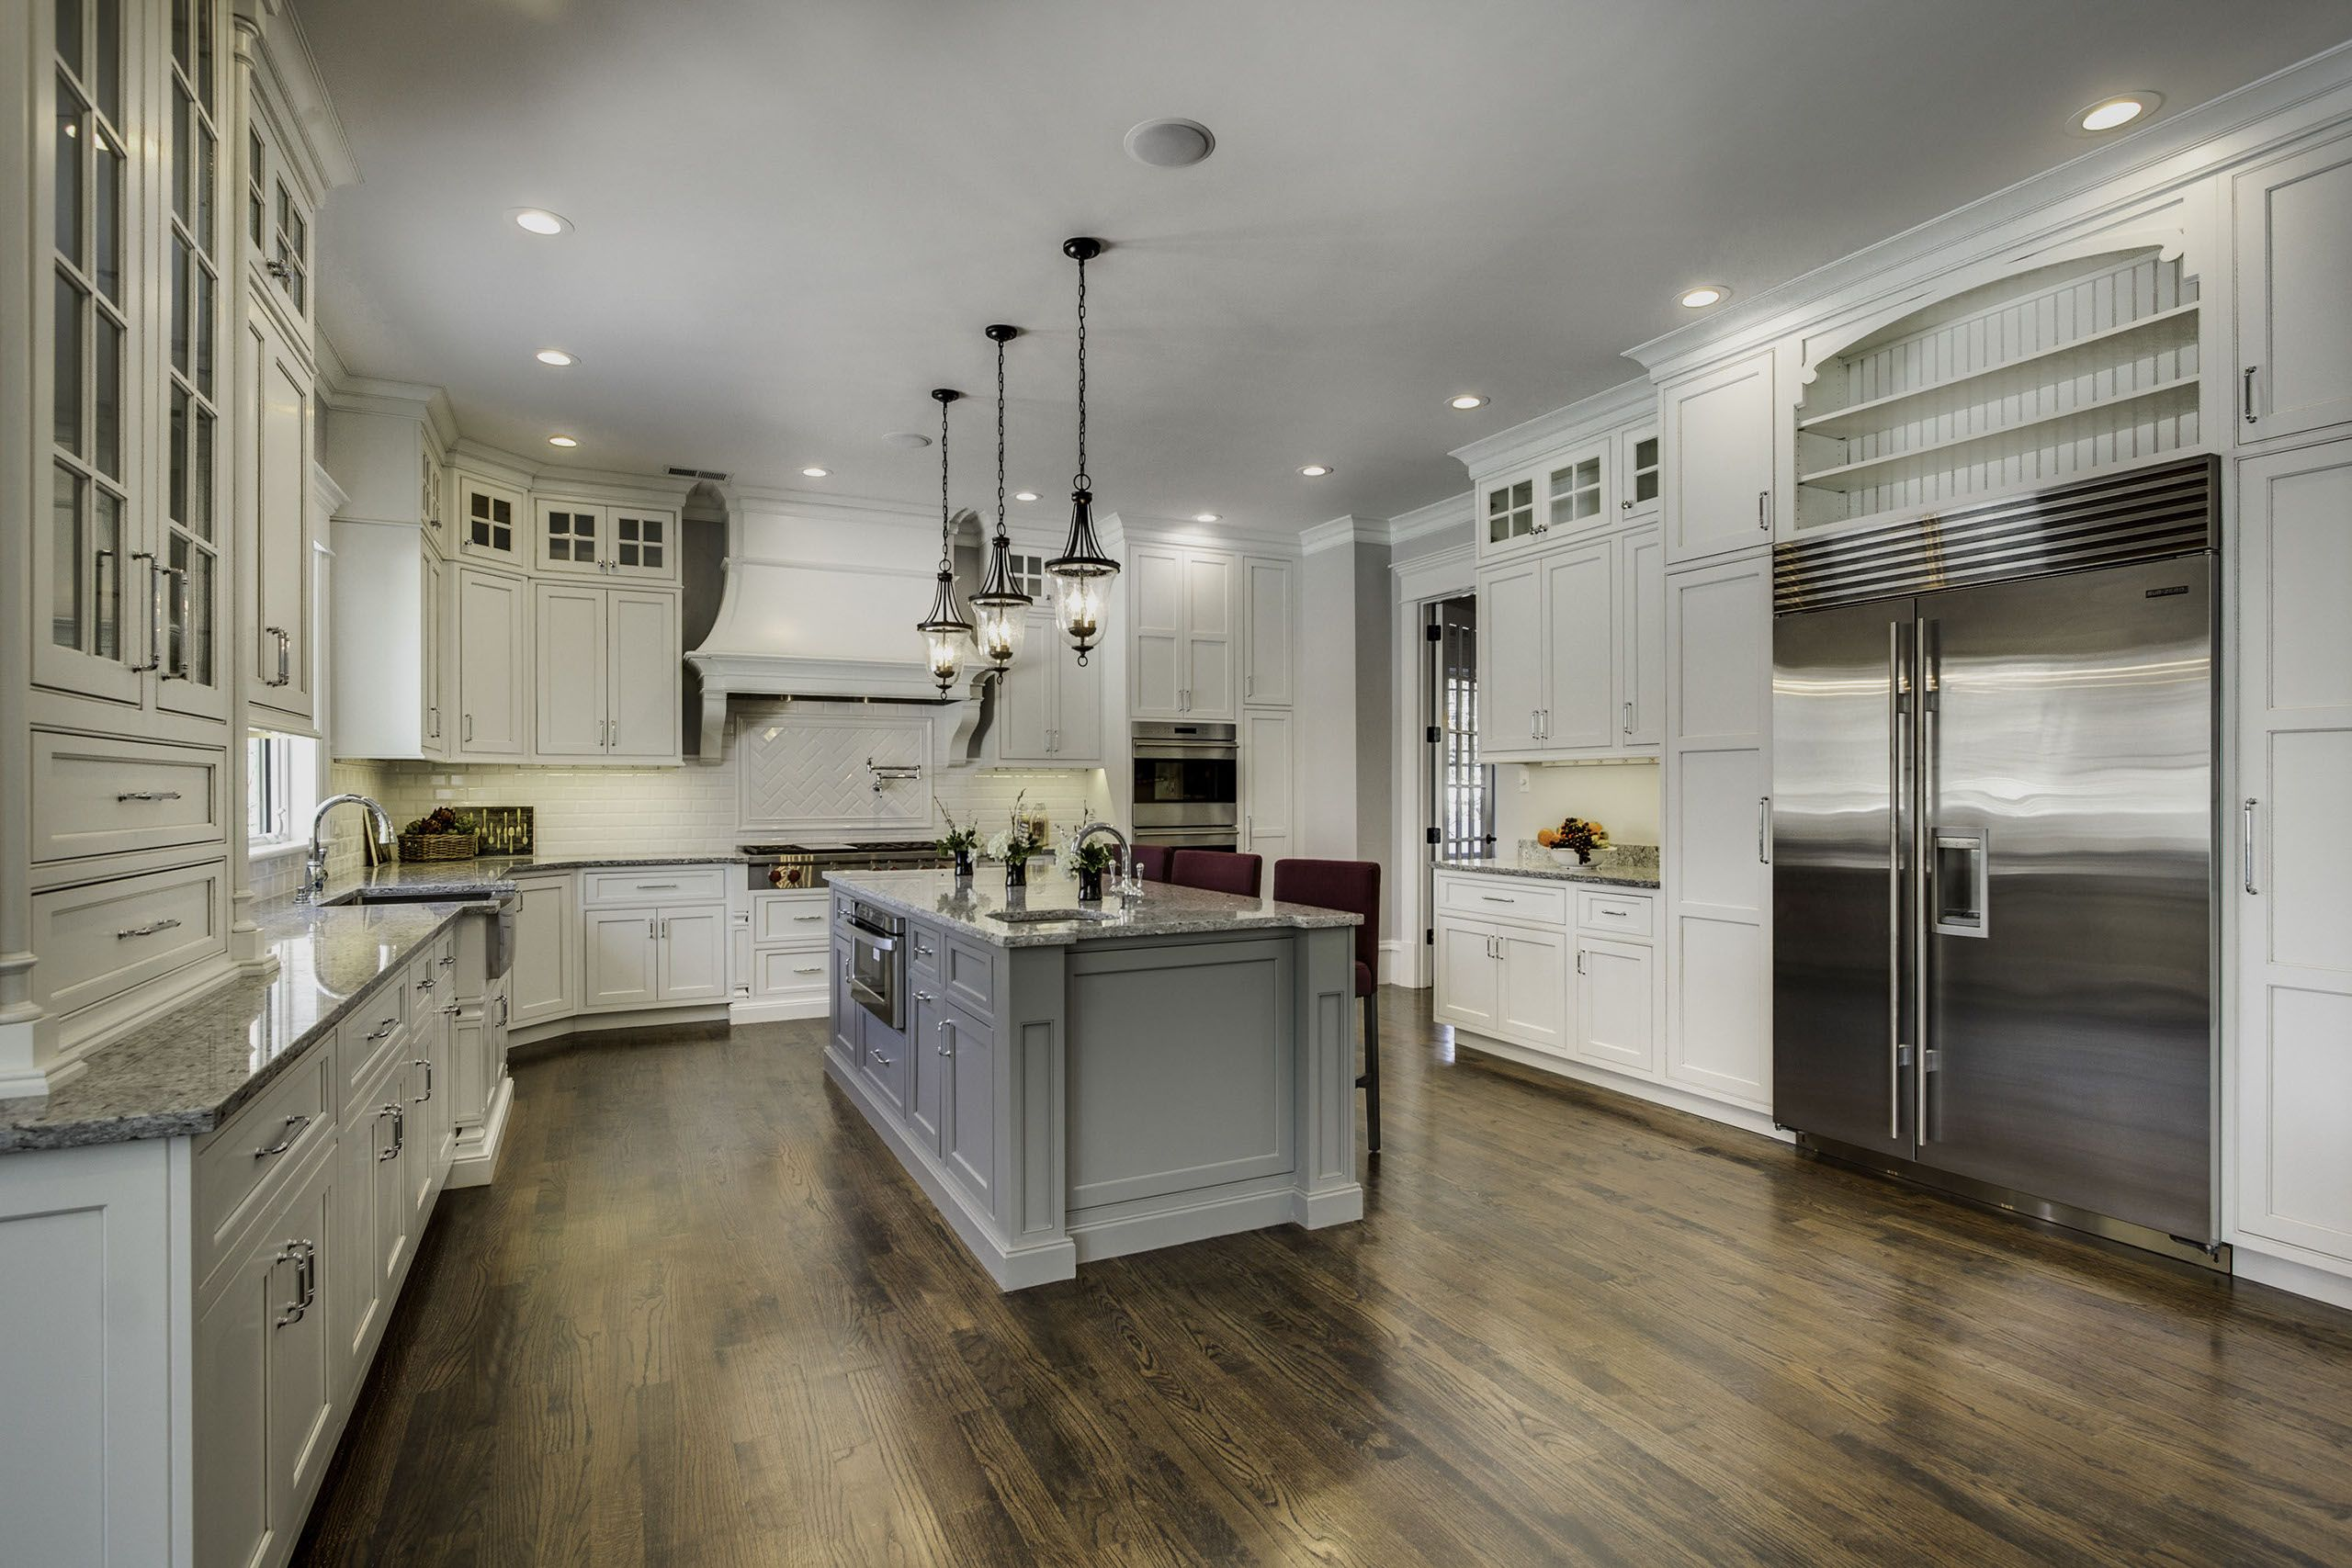 Shilohcabinetry Com Home Shiloh Cabinetry Shiloh Cabinets Kitchen Cabinet Styles